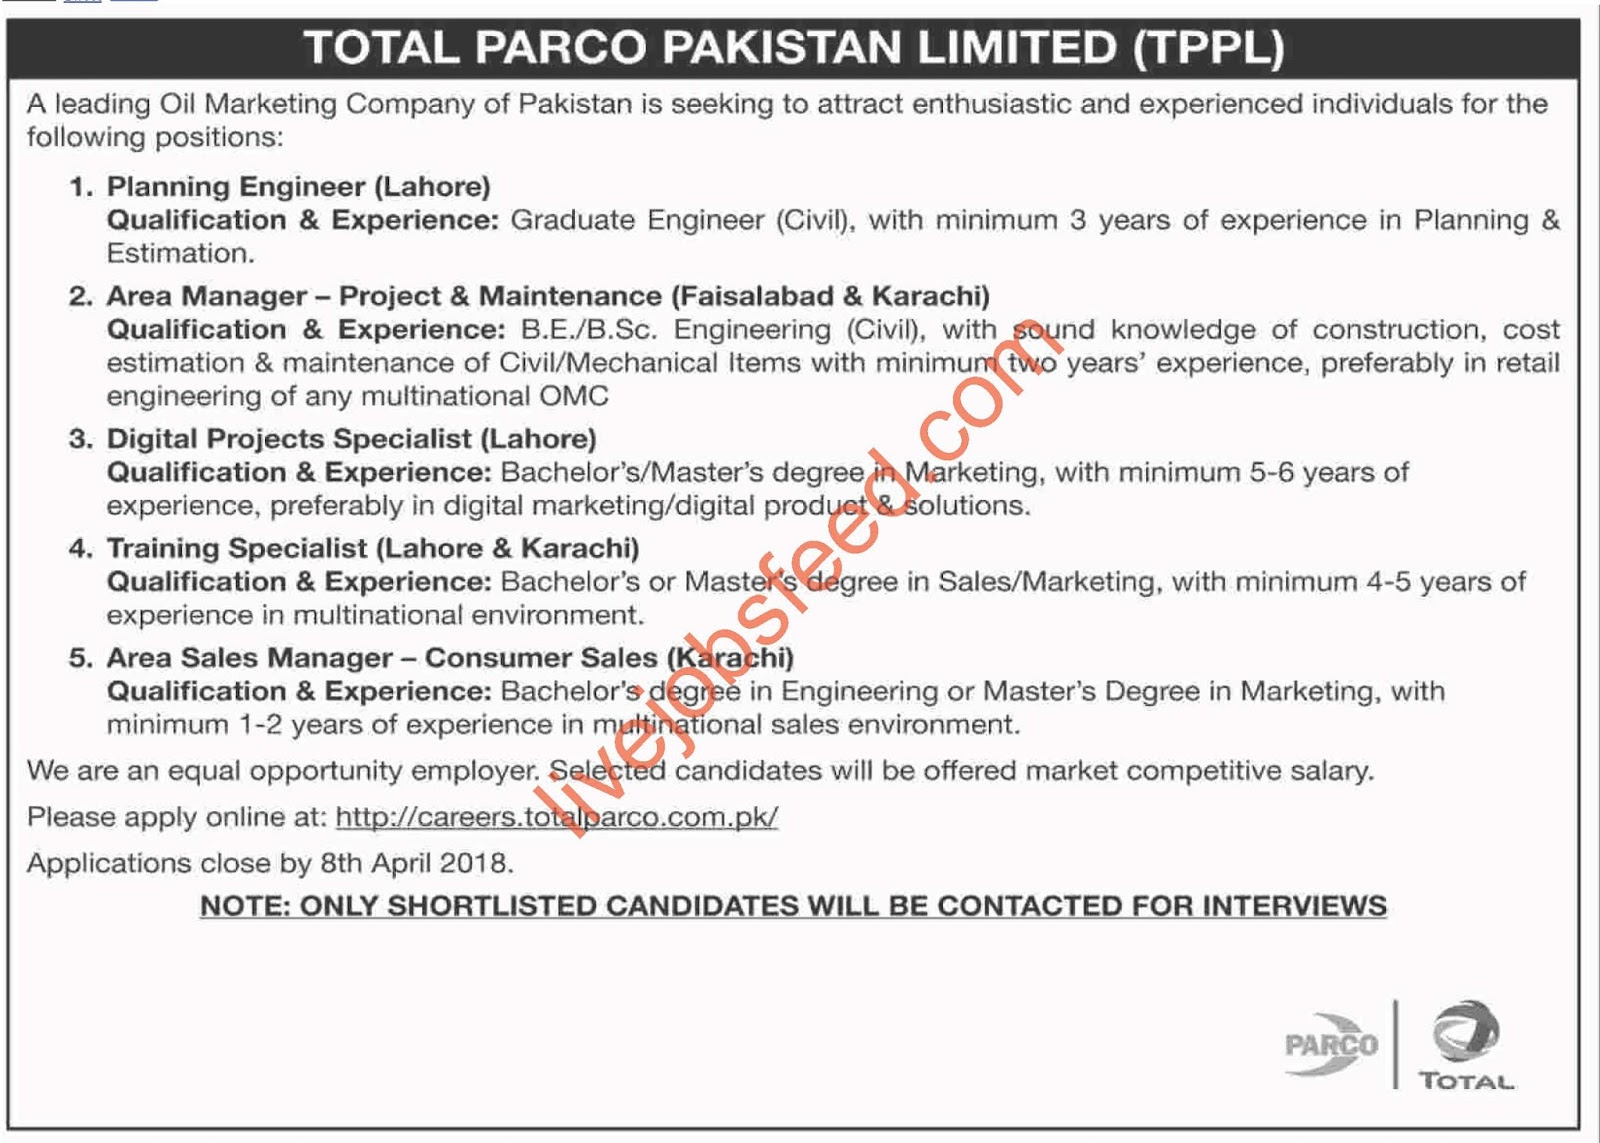 total parco pakistan limited tppl latest advertisement vacancies apply online last date 8 april 2018 by indian girls whatsapp numbers